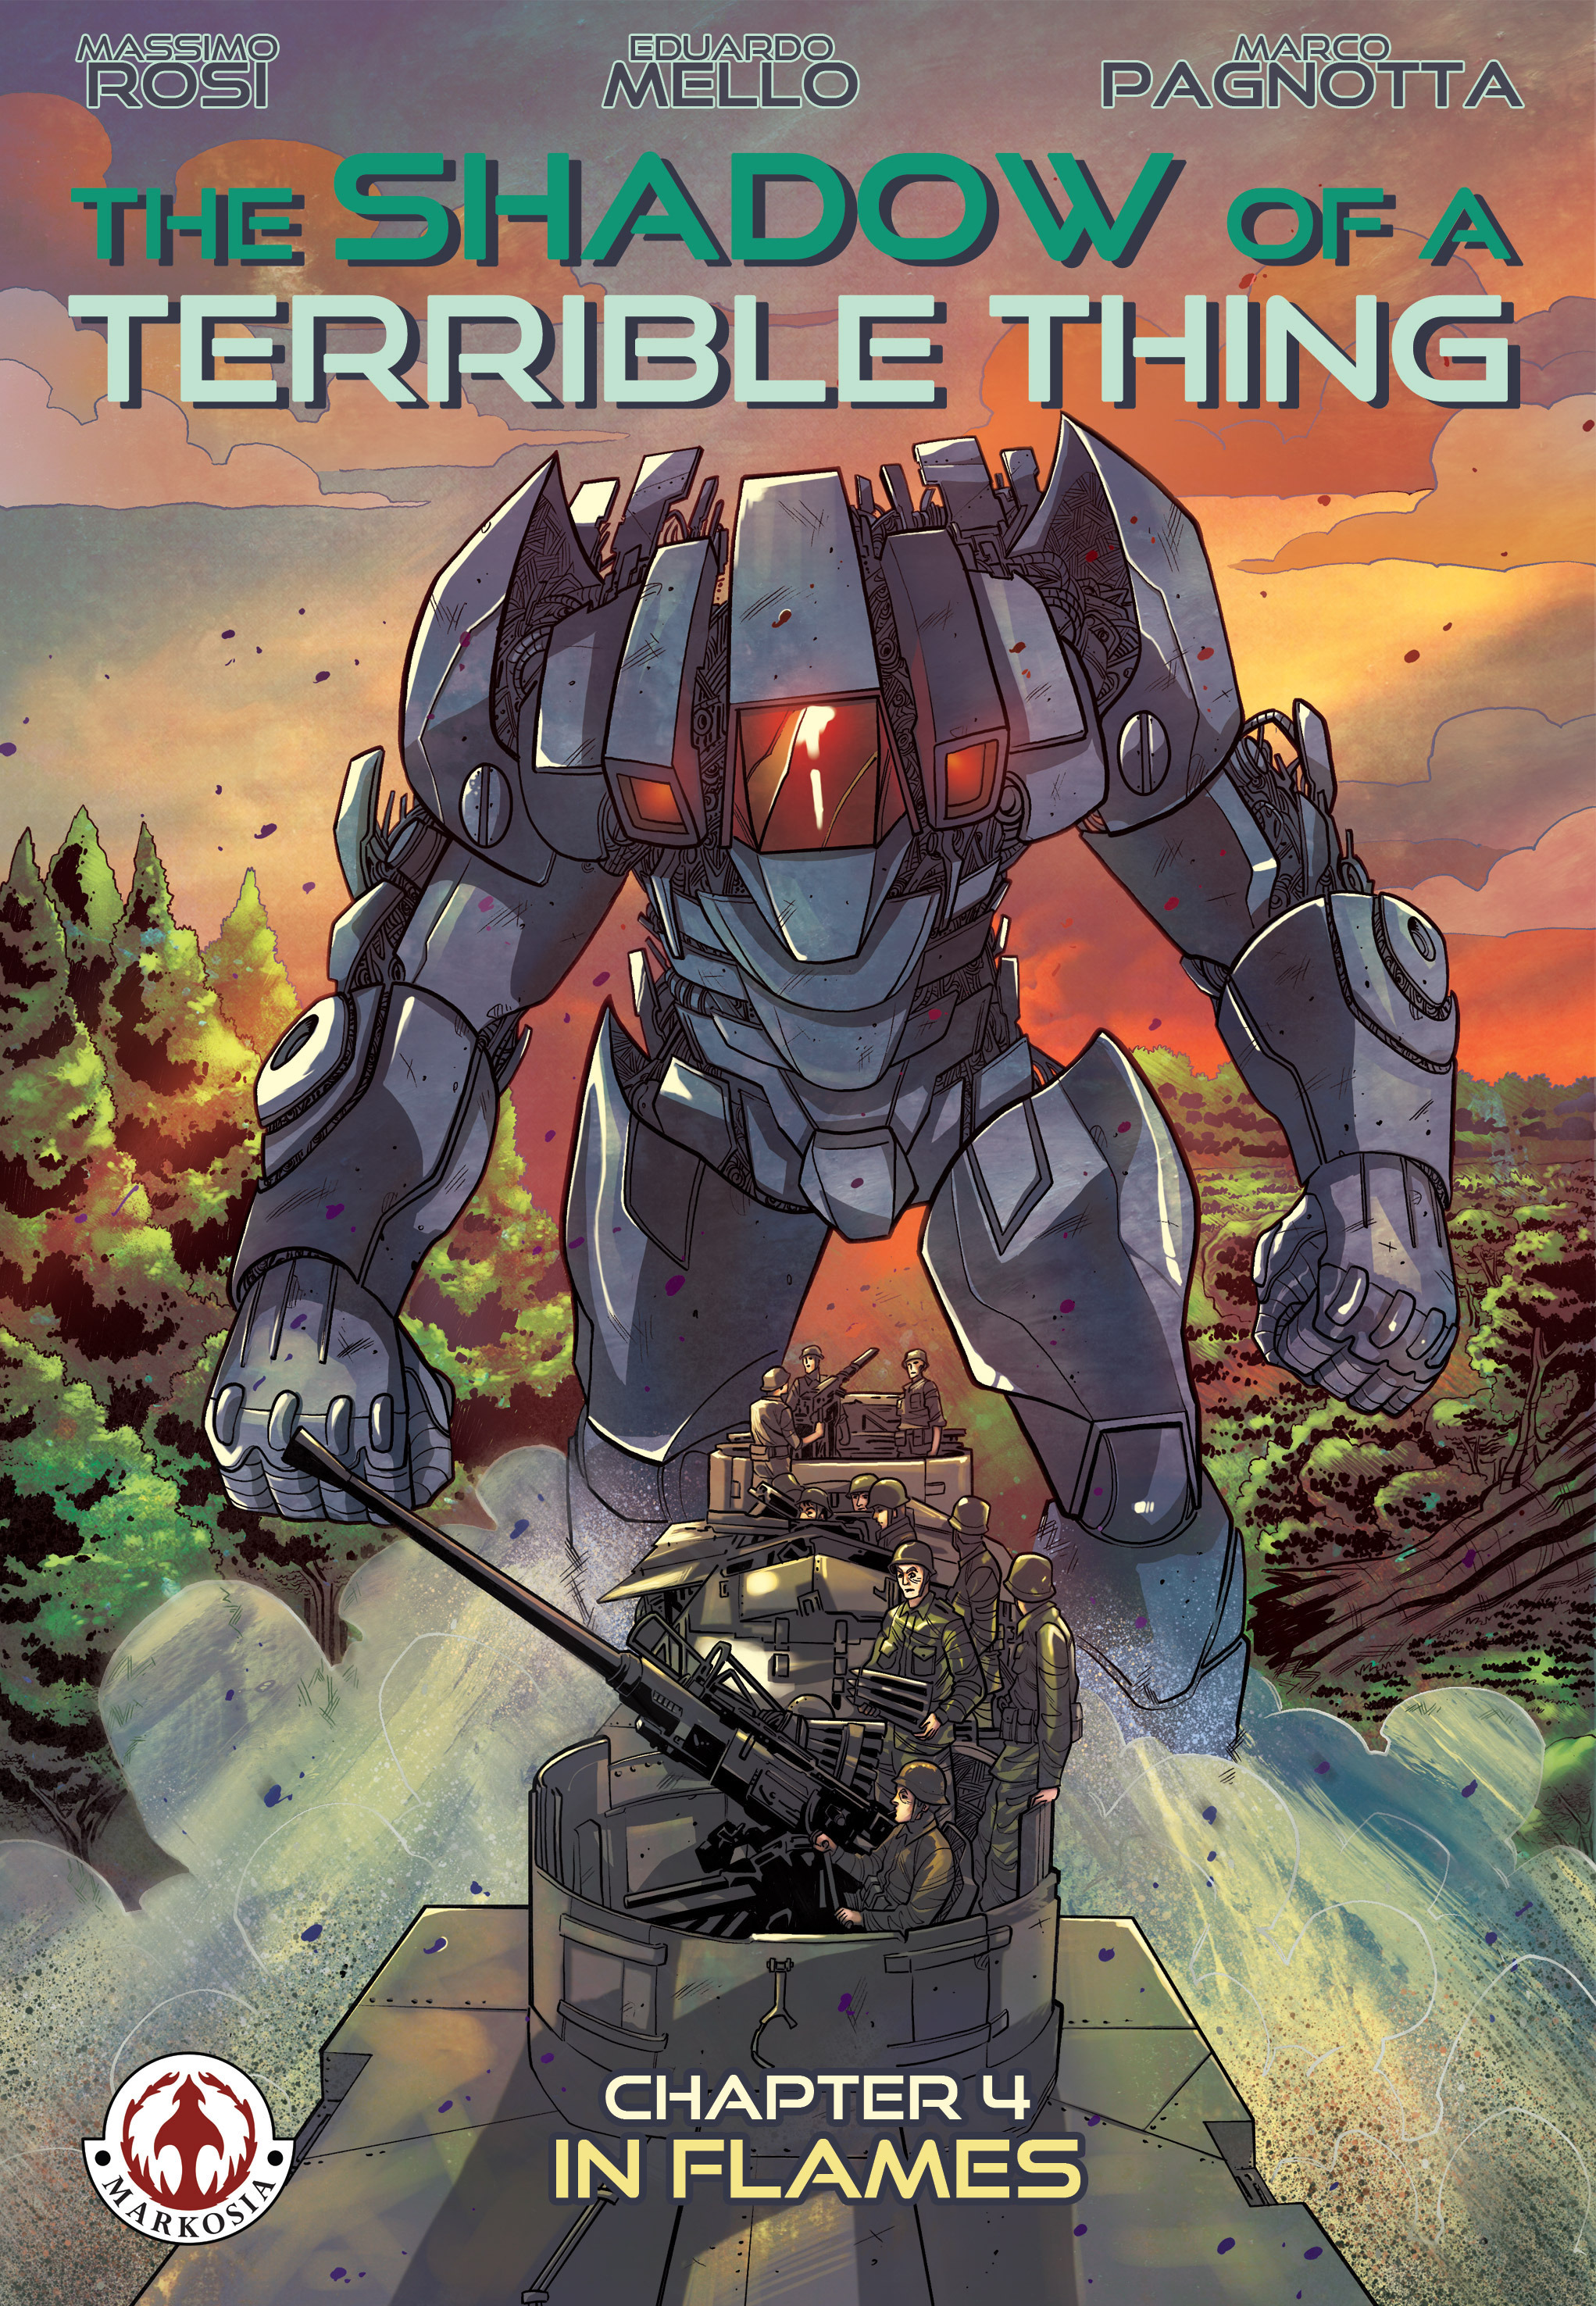 Read online The Shadow of a Terrible Thing comic -  Issue # TPB - 73